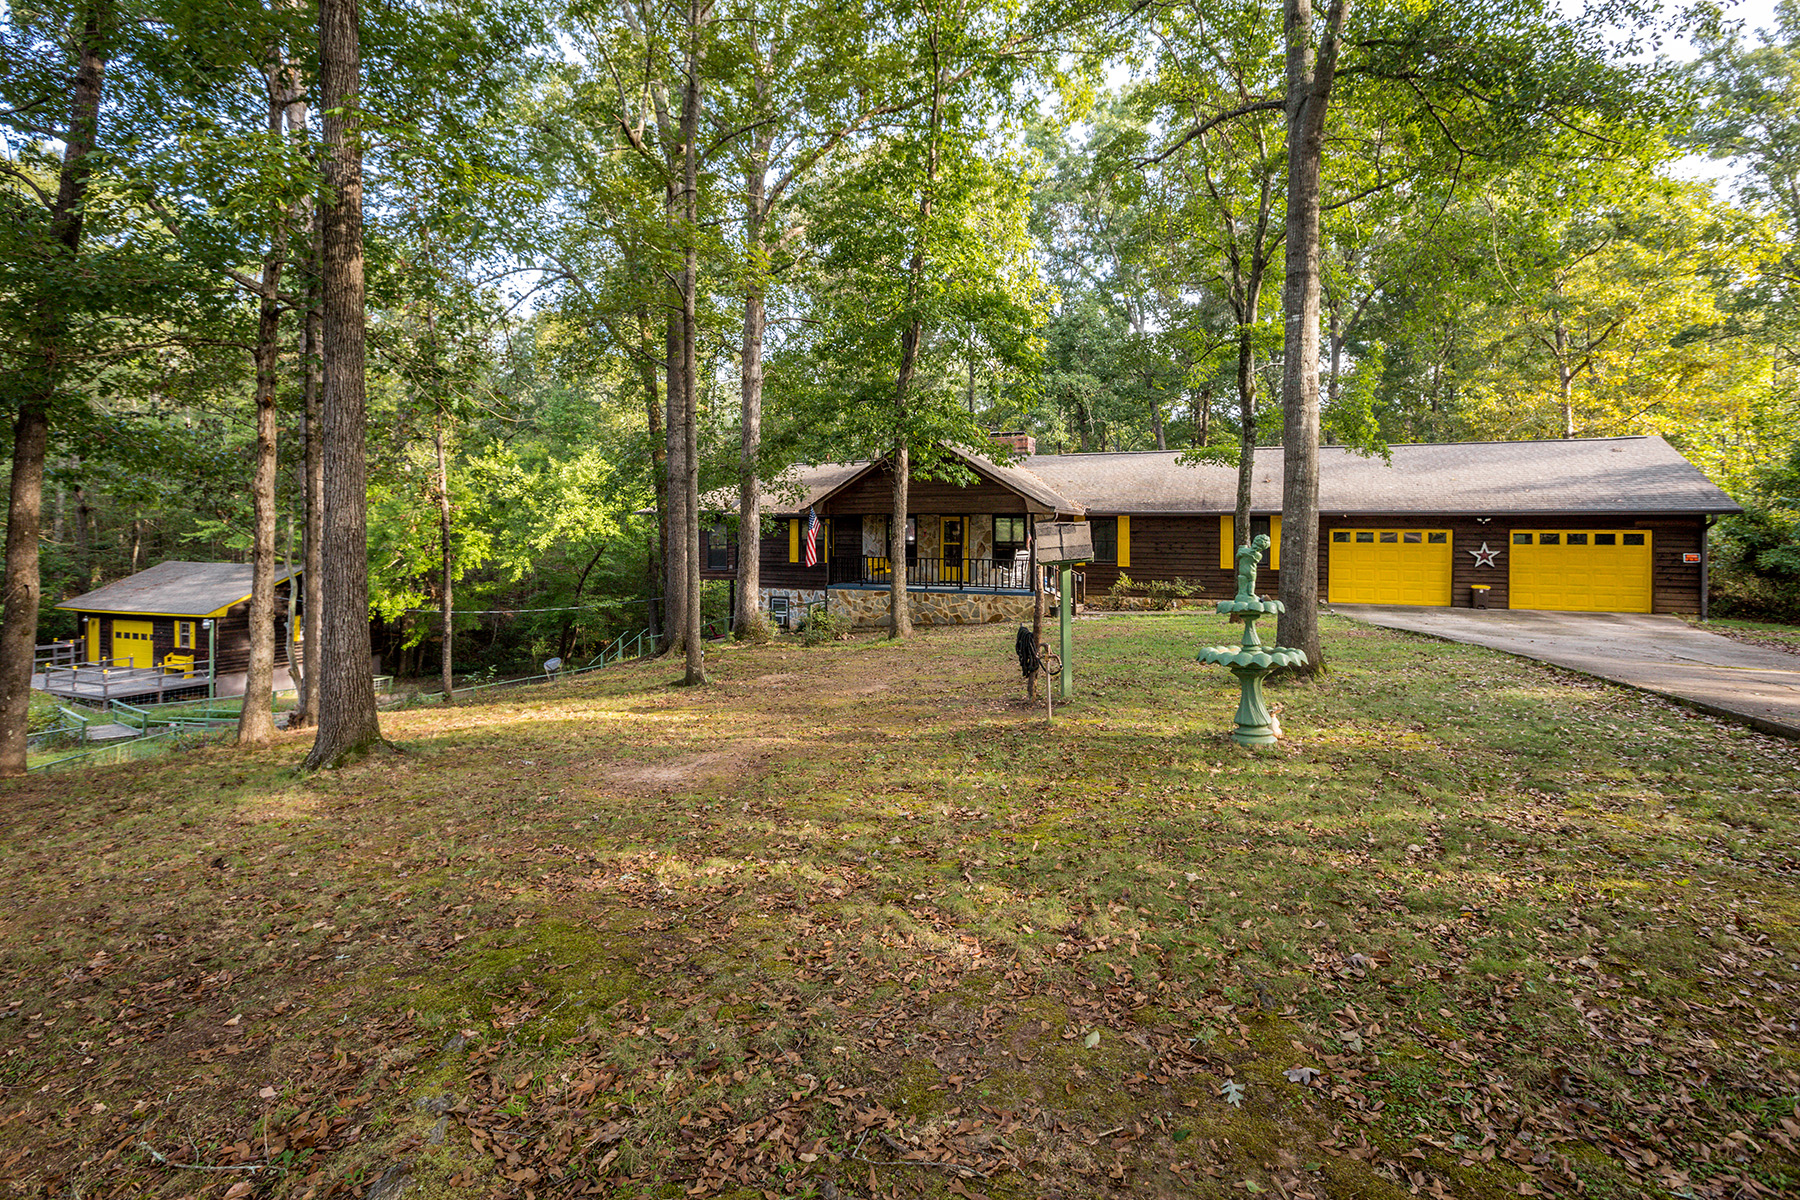 Single Family Home for Sale at Charmingly Private Oasis On Over 18 Private Acres! 1953 Keys Ferry Road McDonough, Georgia 30252 United States